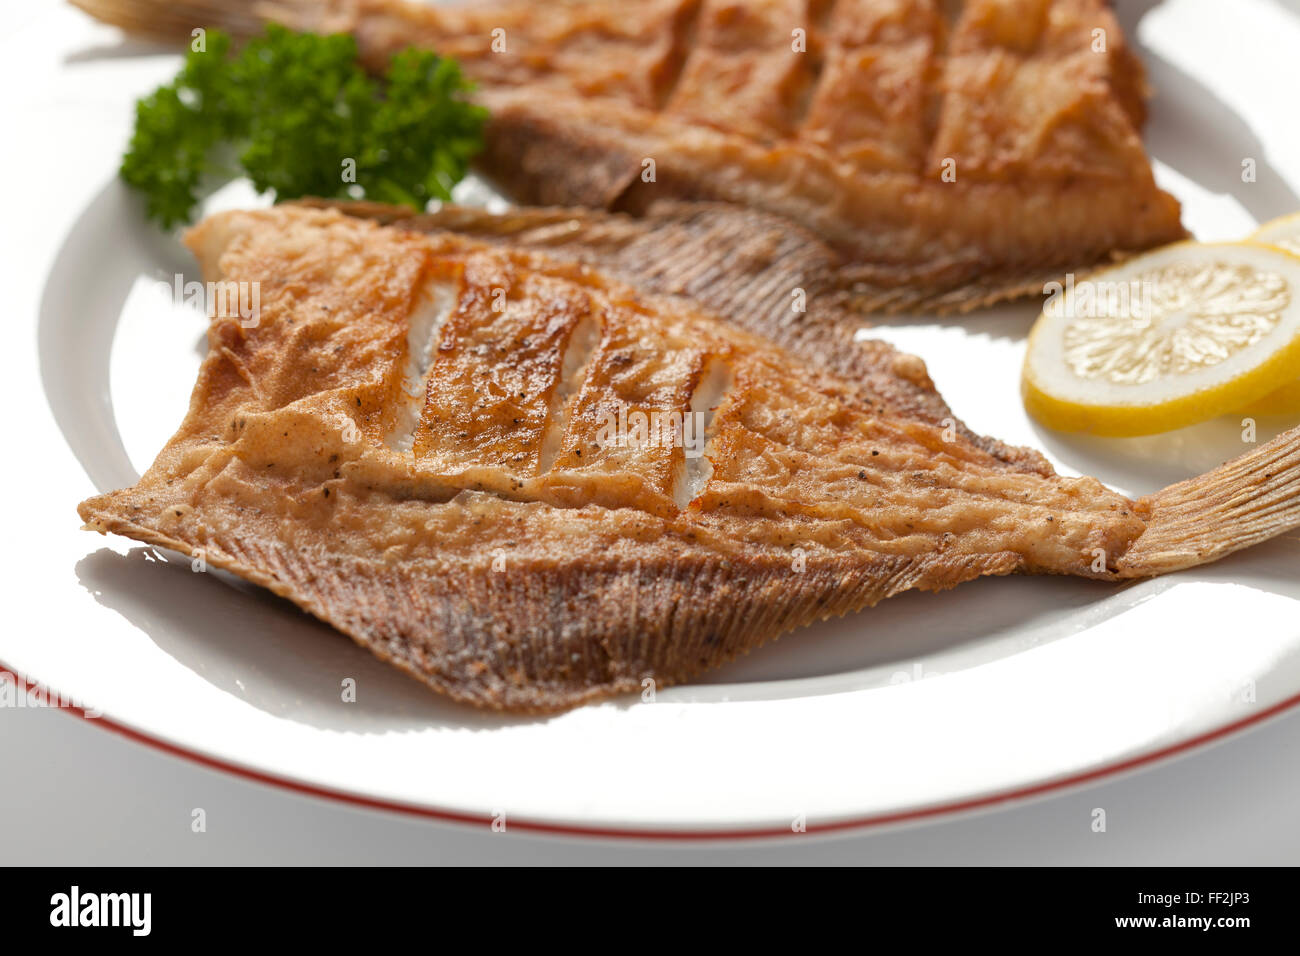 Dish with fried plaice, lemon and parsley - Stock Image